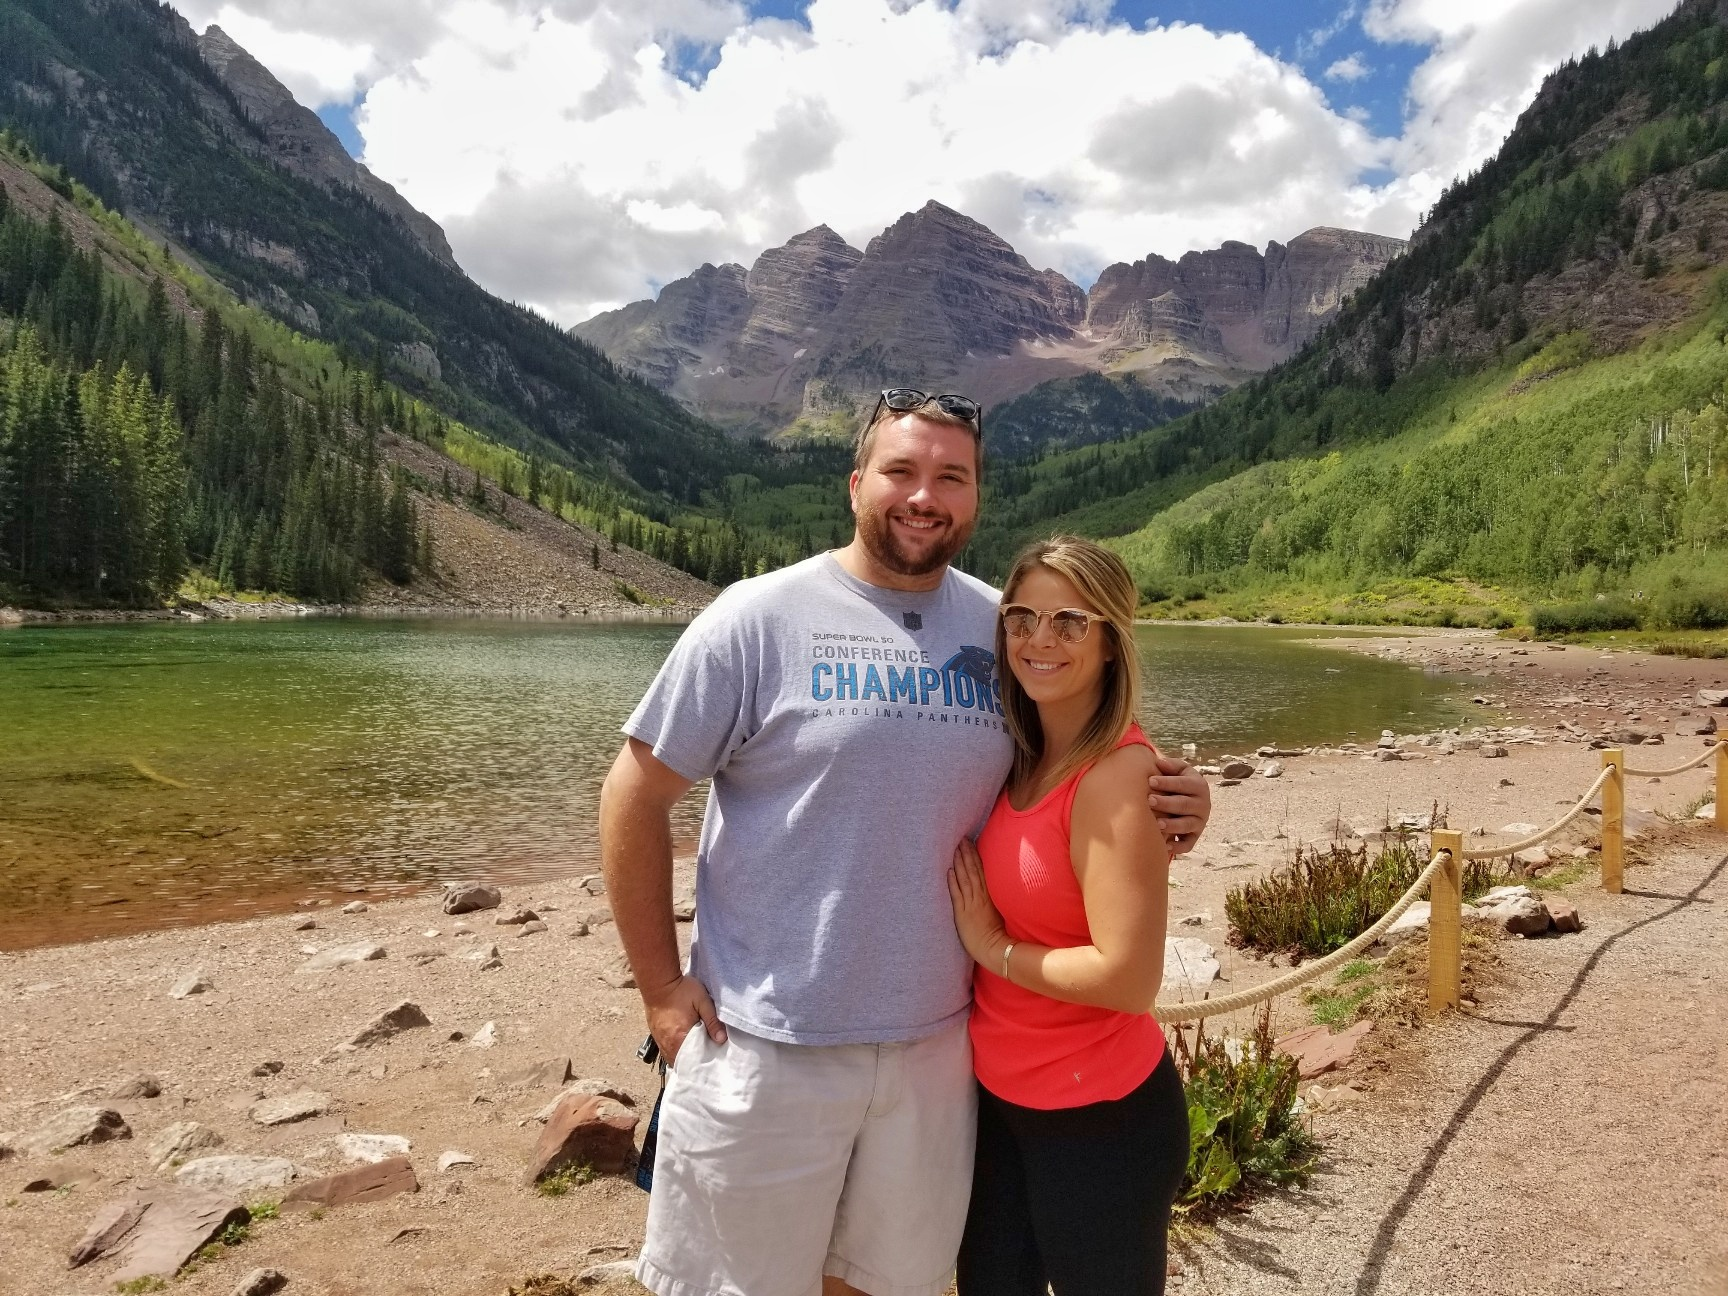 dating in denver, play mile high